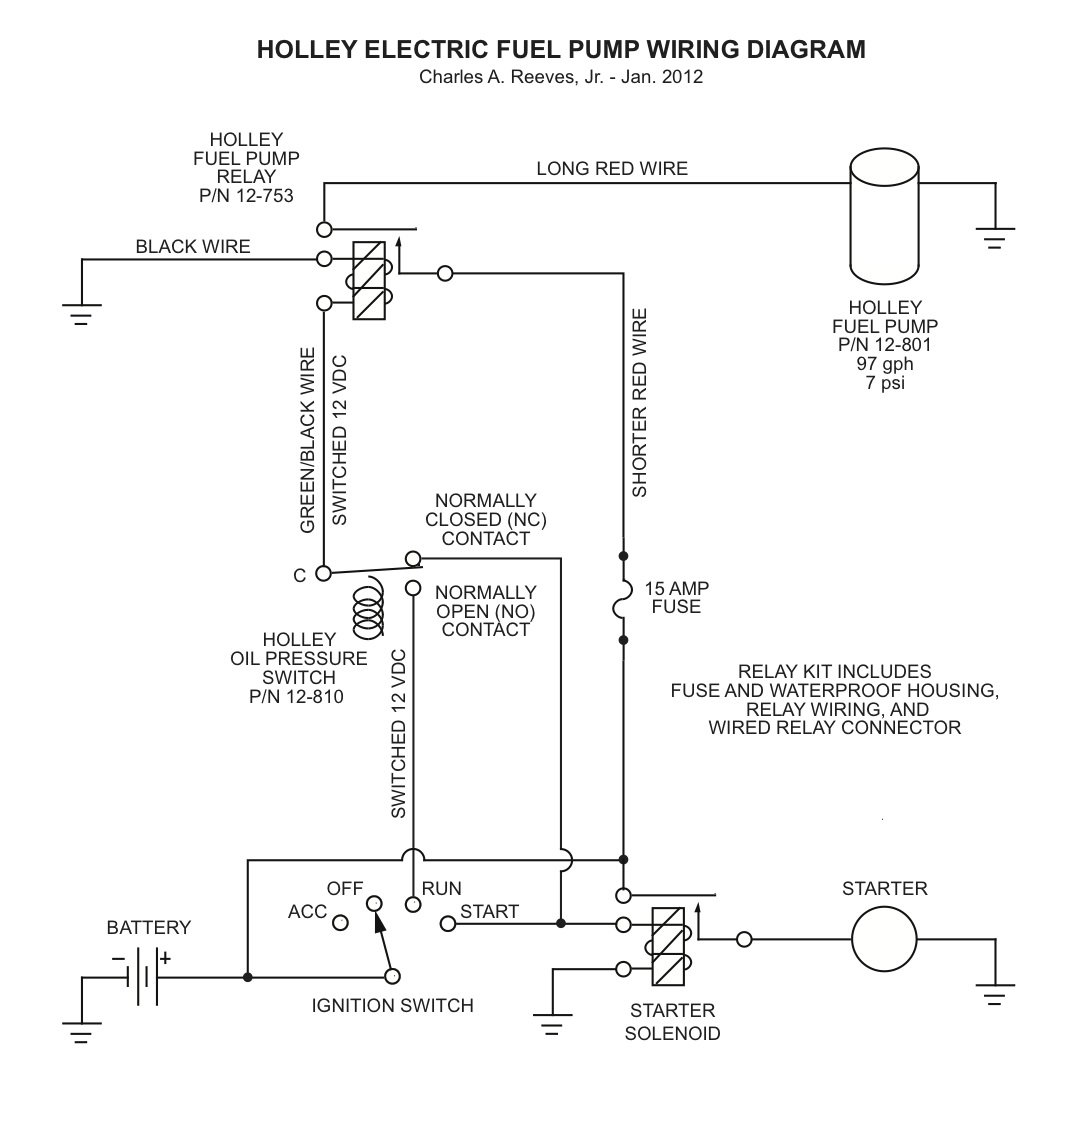 holley electric choke wiring diagram for motorcycle alarm installing a fuel pump in 1966 mustang